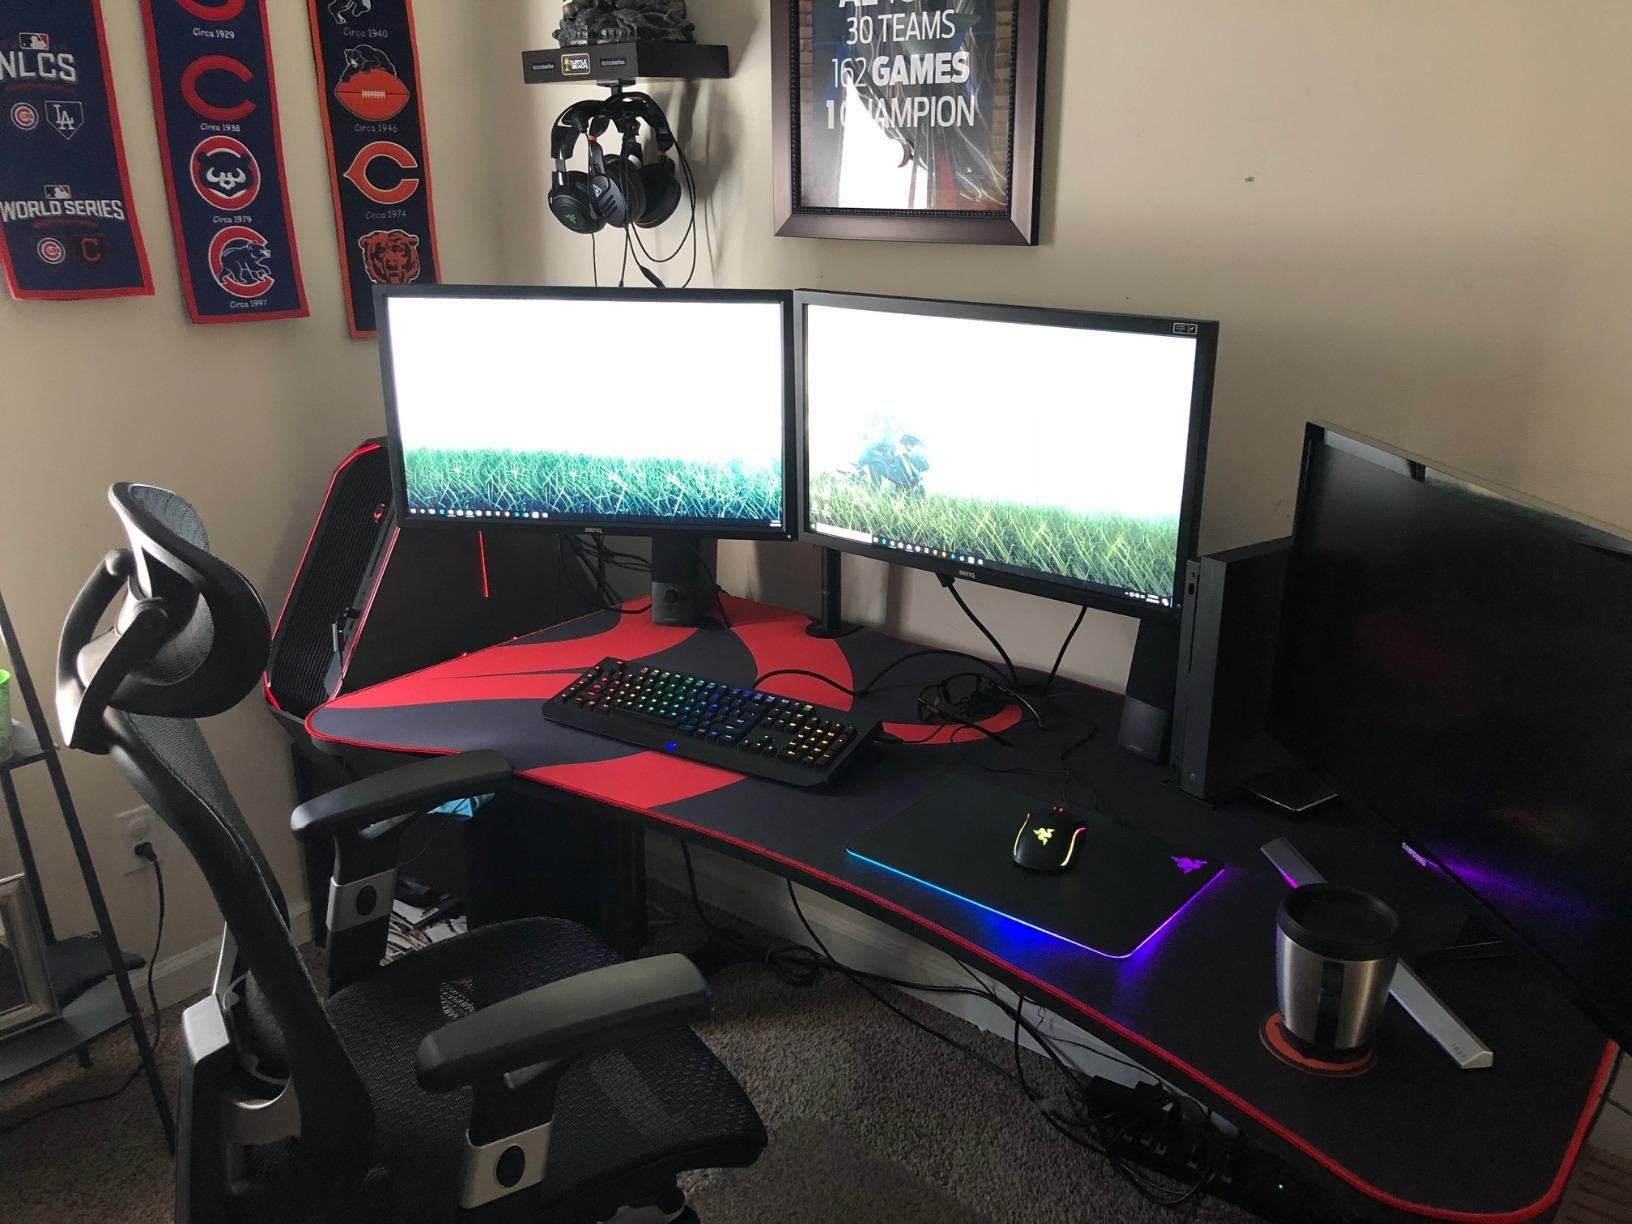 Best Gaming Desk Perfect Desk For My Gaming Needs Tried Different Ones But This By Far Stands Out As The Best Gaming Desk Good Gaming Desk Gaming Desk Black